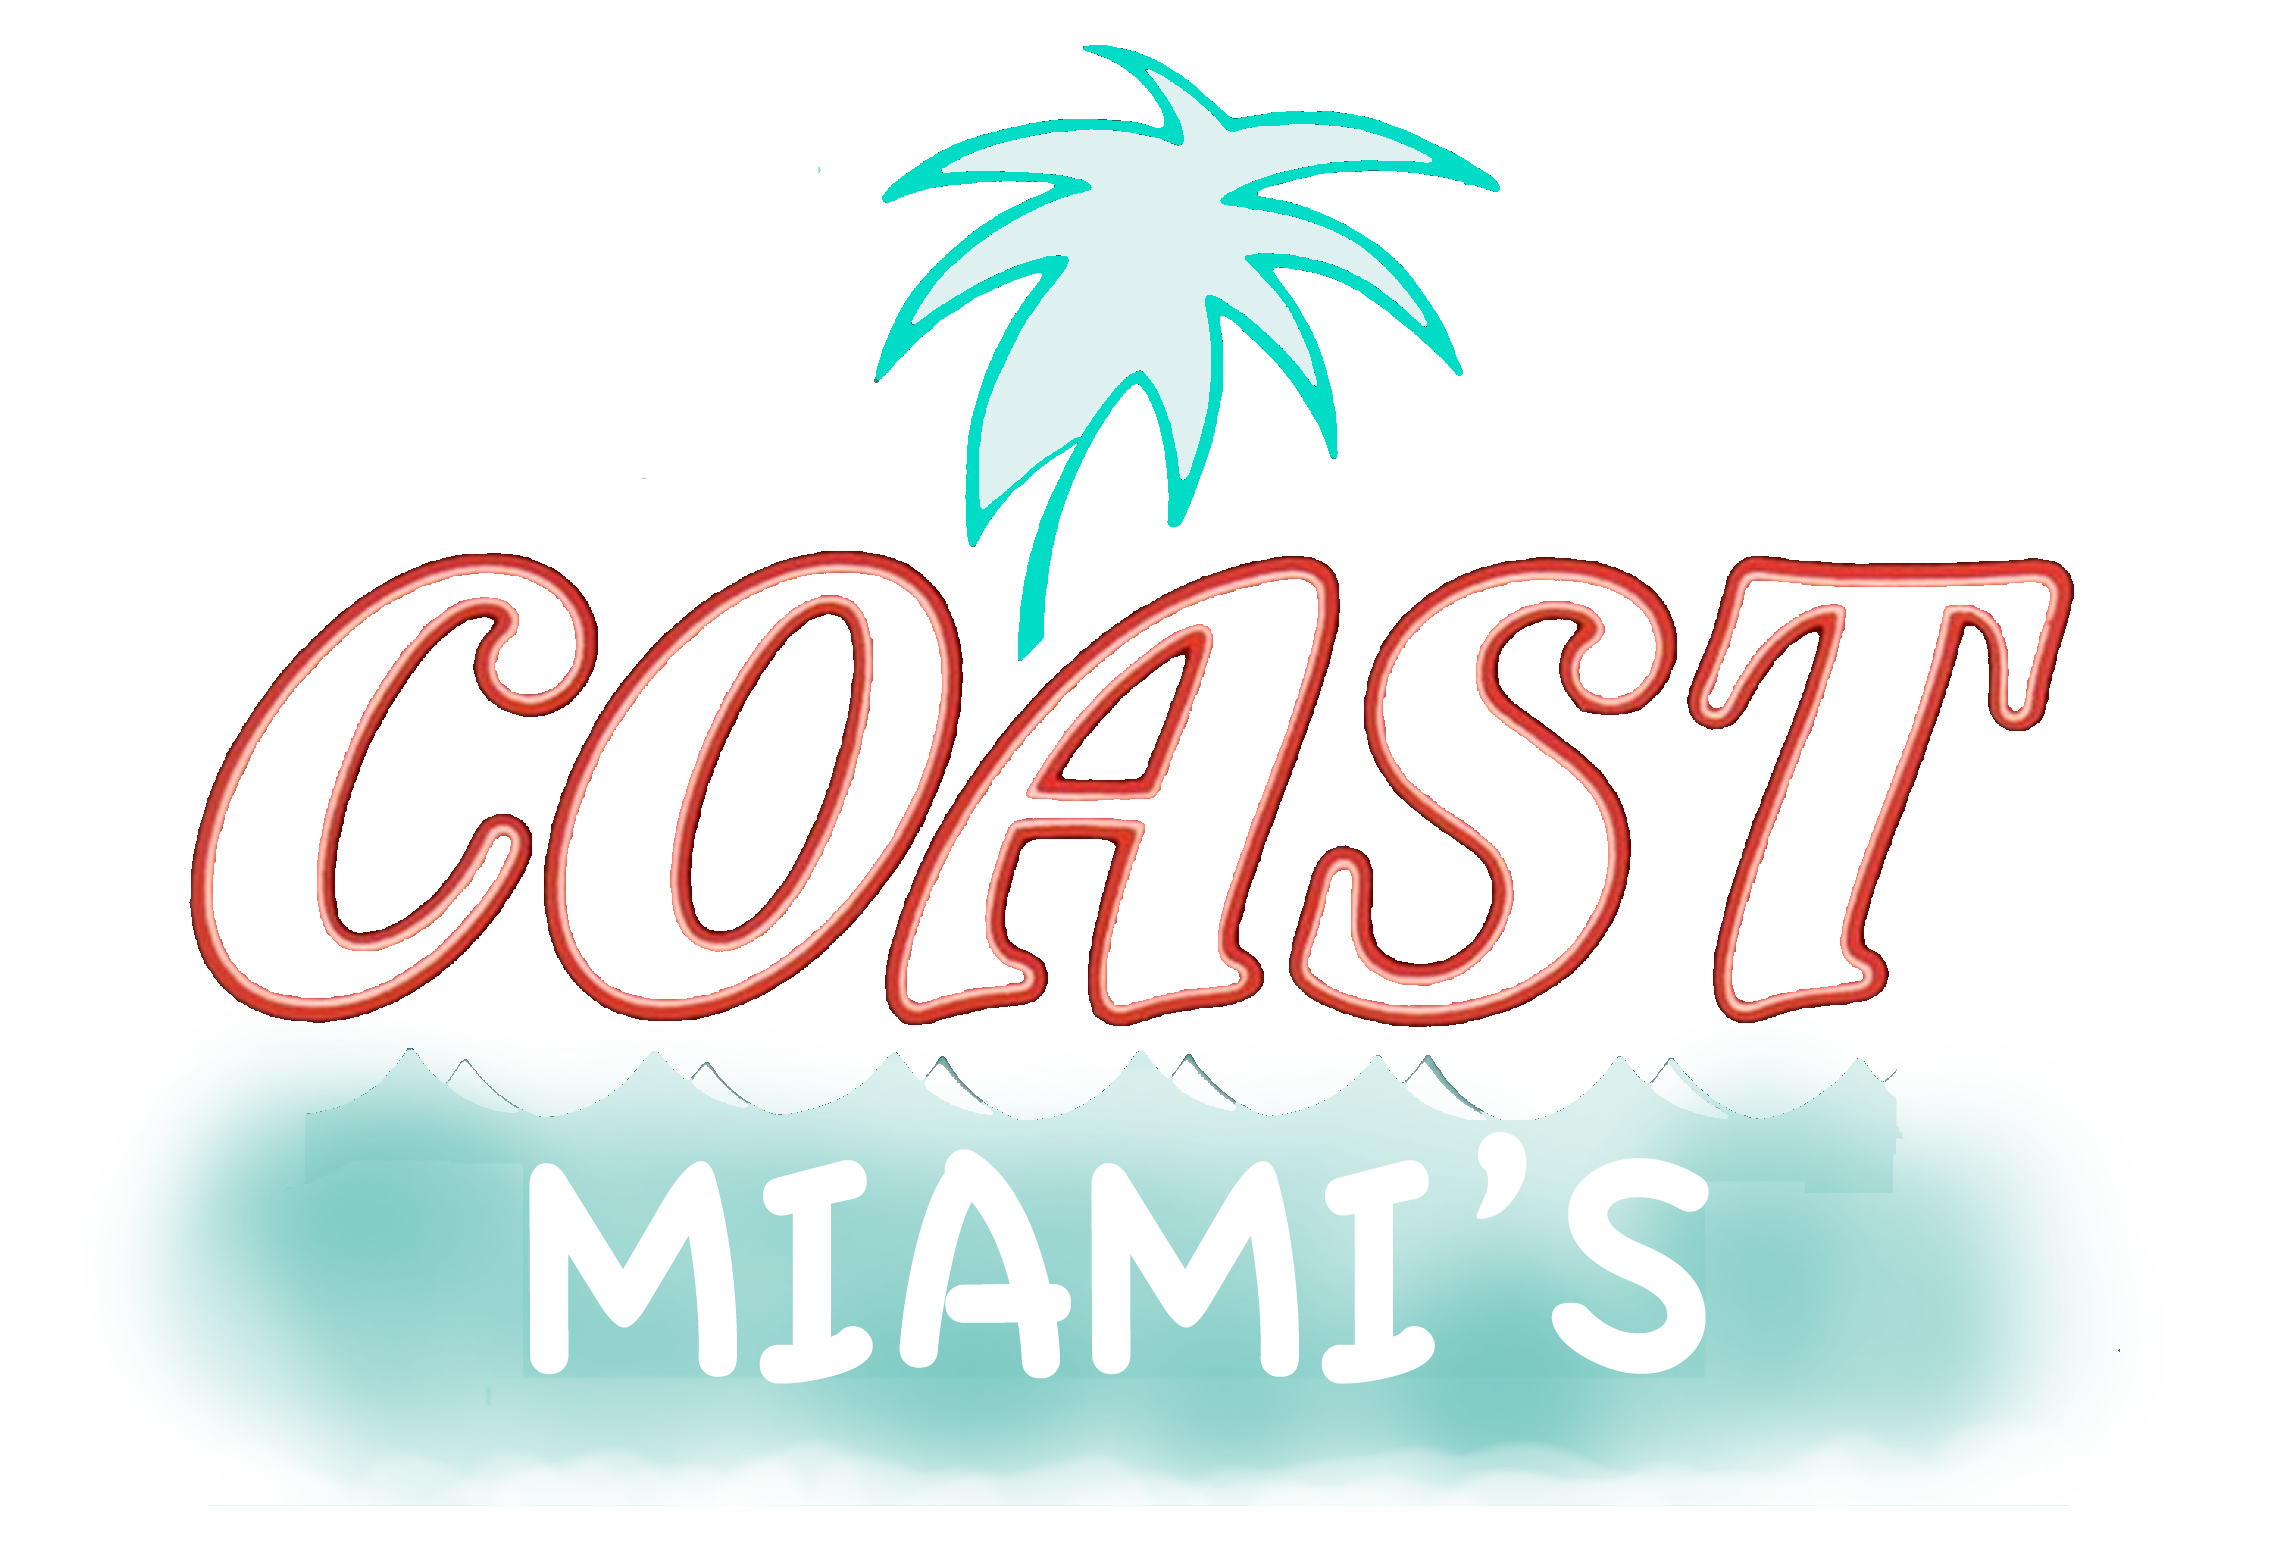 MIAMI'S COAST - CLASSIC STYLE 1980's IMAGING FOR WFLC-FM MIAMI. 17 CUTS SUNG WITH THE BIG-ASS VOCAL GROUP, INCLUDES ID'S & SHOTGUNS.MUSICIANS: BRUCE UPCHURCH,jay saunders, rodney booth, john osborn, keith atkins, pete brewer – SINGERS: ANNAGREY WEICHMAN, deb hooper, KAY SHARPE, john hooper, steve haas, GREG CLANCY, JIM CLANCY